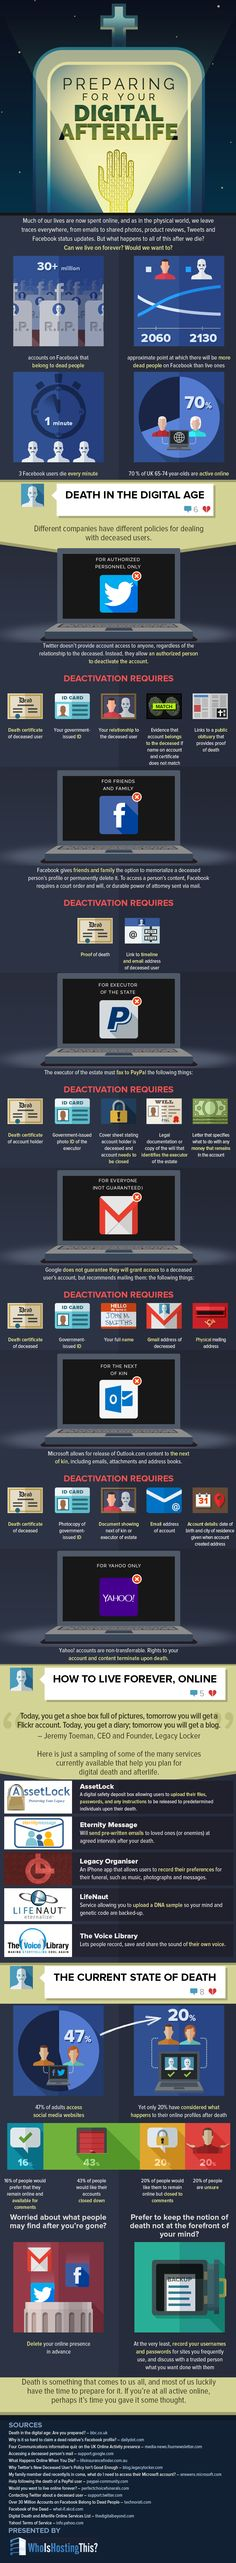 Preparing For Your Digital Afterlife   #Infographic #DigitalLife #SocialMedia